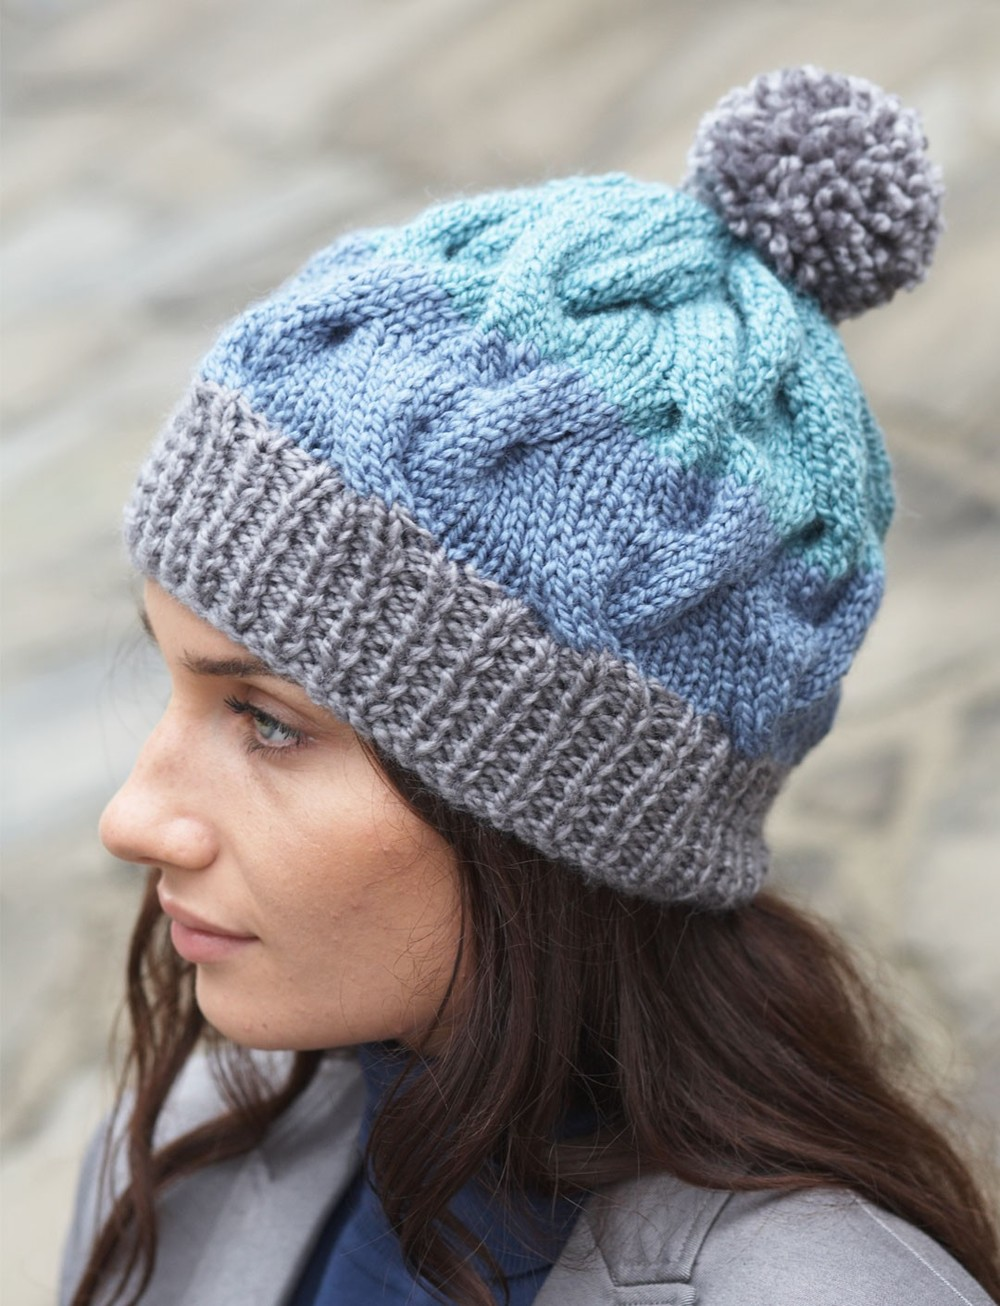 How to tie a hat with knitting needles and crochet - training for beginners 14